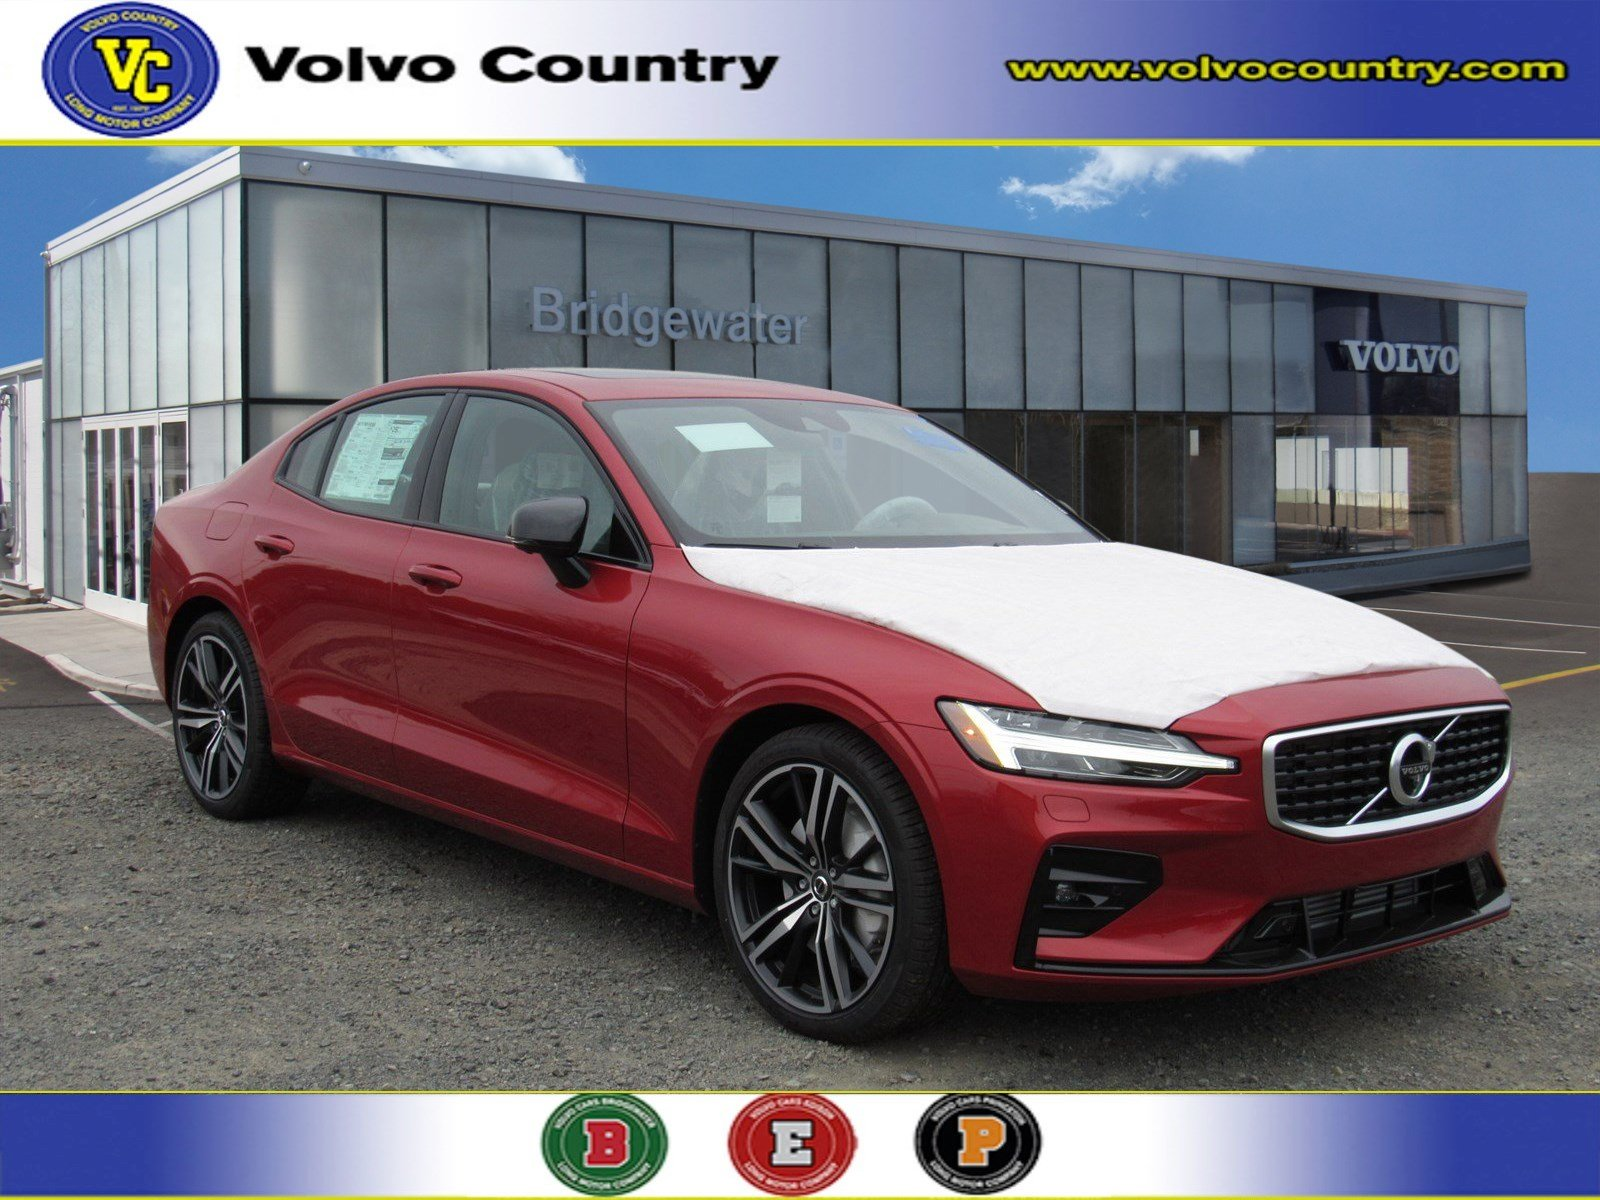 New 2019 Volvo S60 T5 R-Design For Sale/Lease in Somerville NJ VIN#  7JR102FM6KG004852